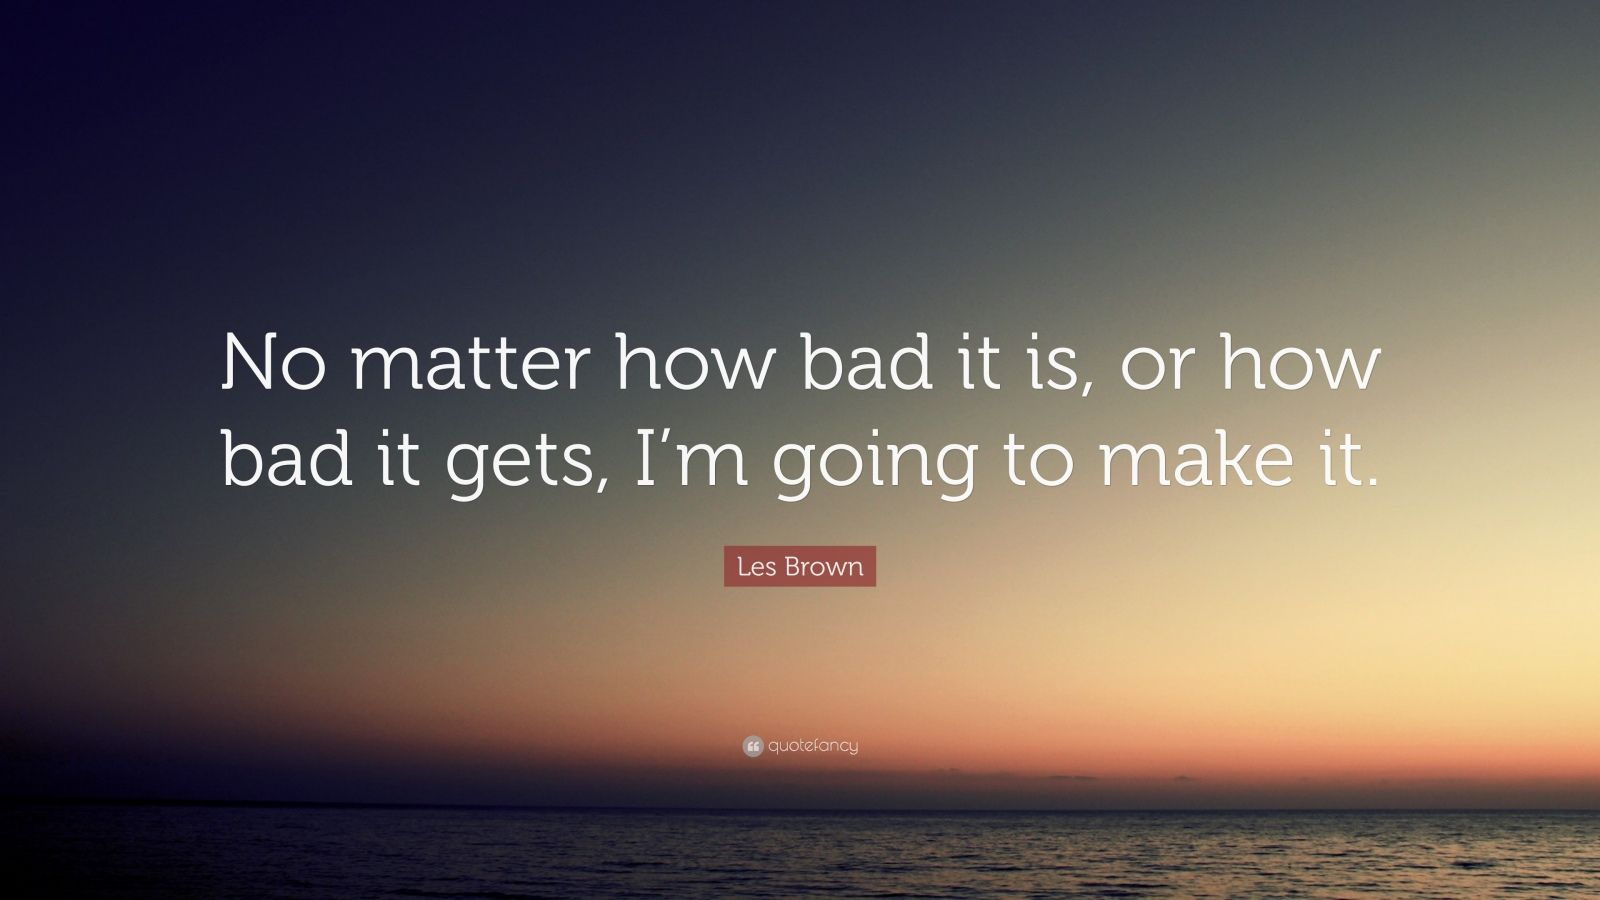 Brian Tracy Quotes Wallpaper Les Brown Quote No Matter How Bad It Is Or How Bad It